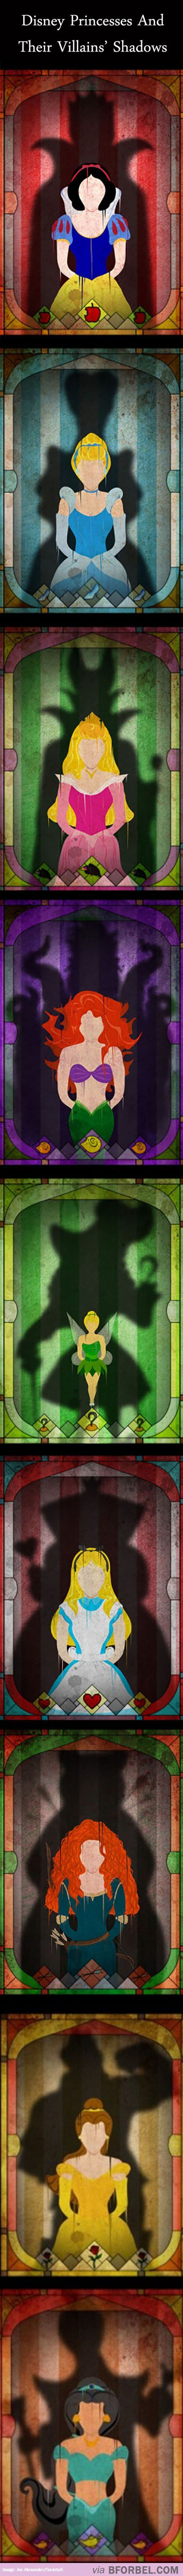 Disney Characters and the Shadows of their Villains.